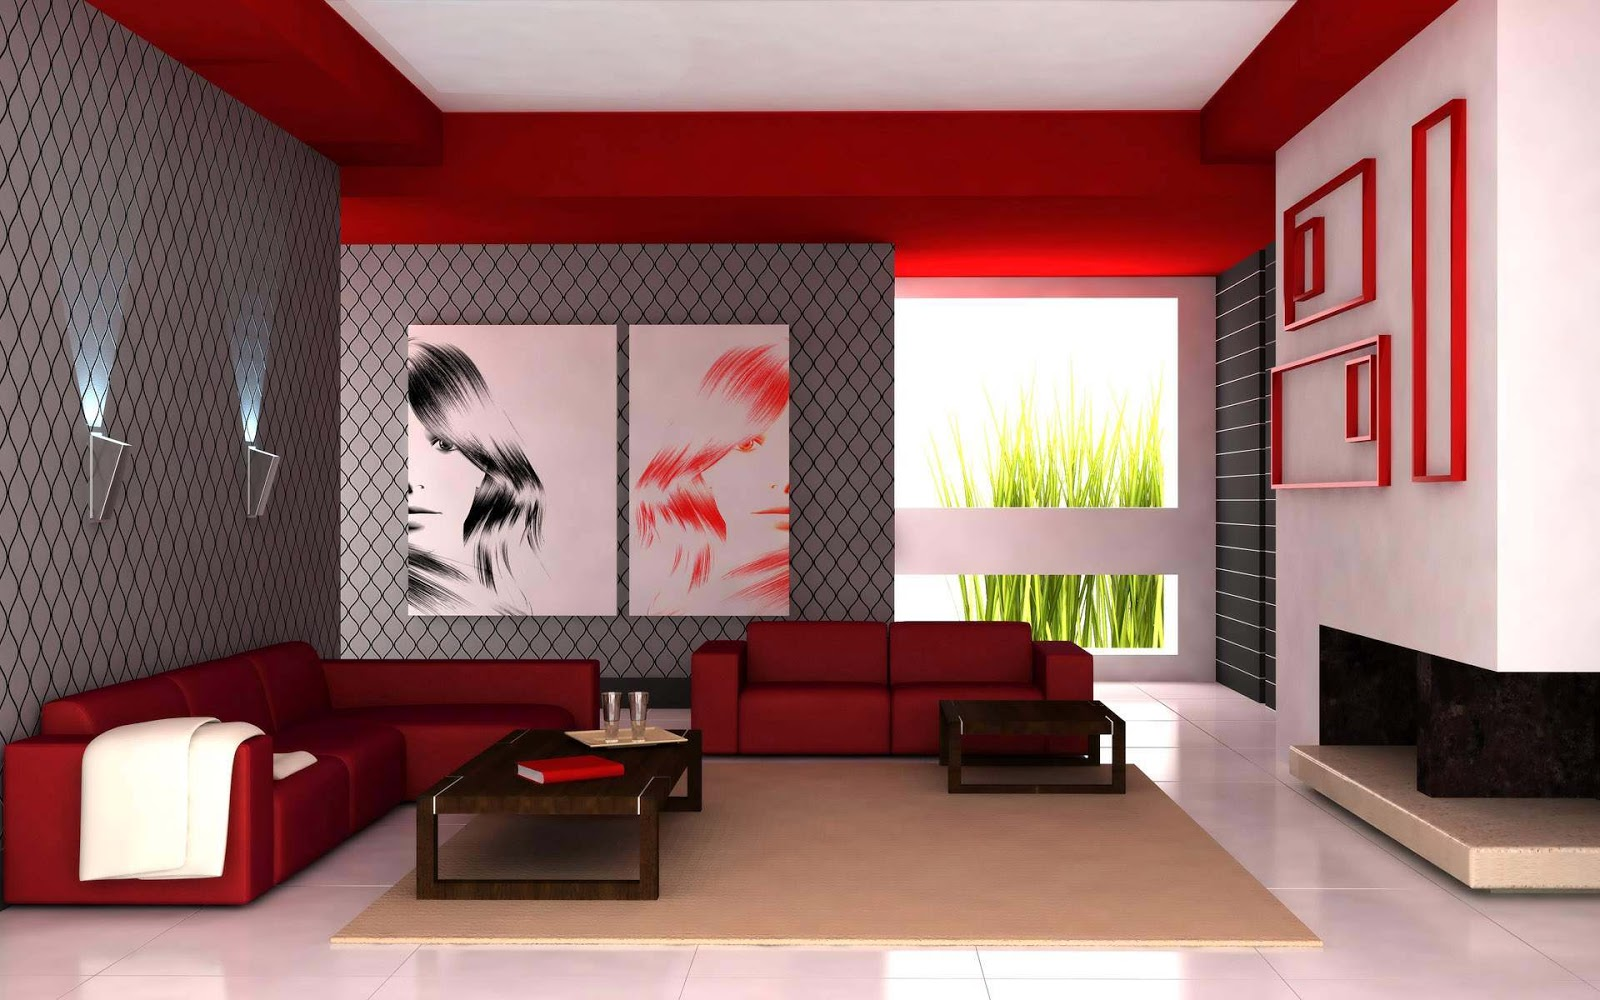 Modern guest room ideas living room interior designs for Modern interior design ideas living room